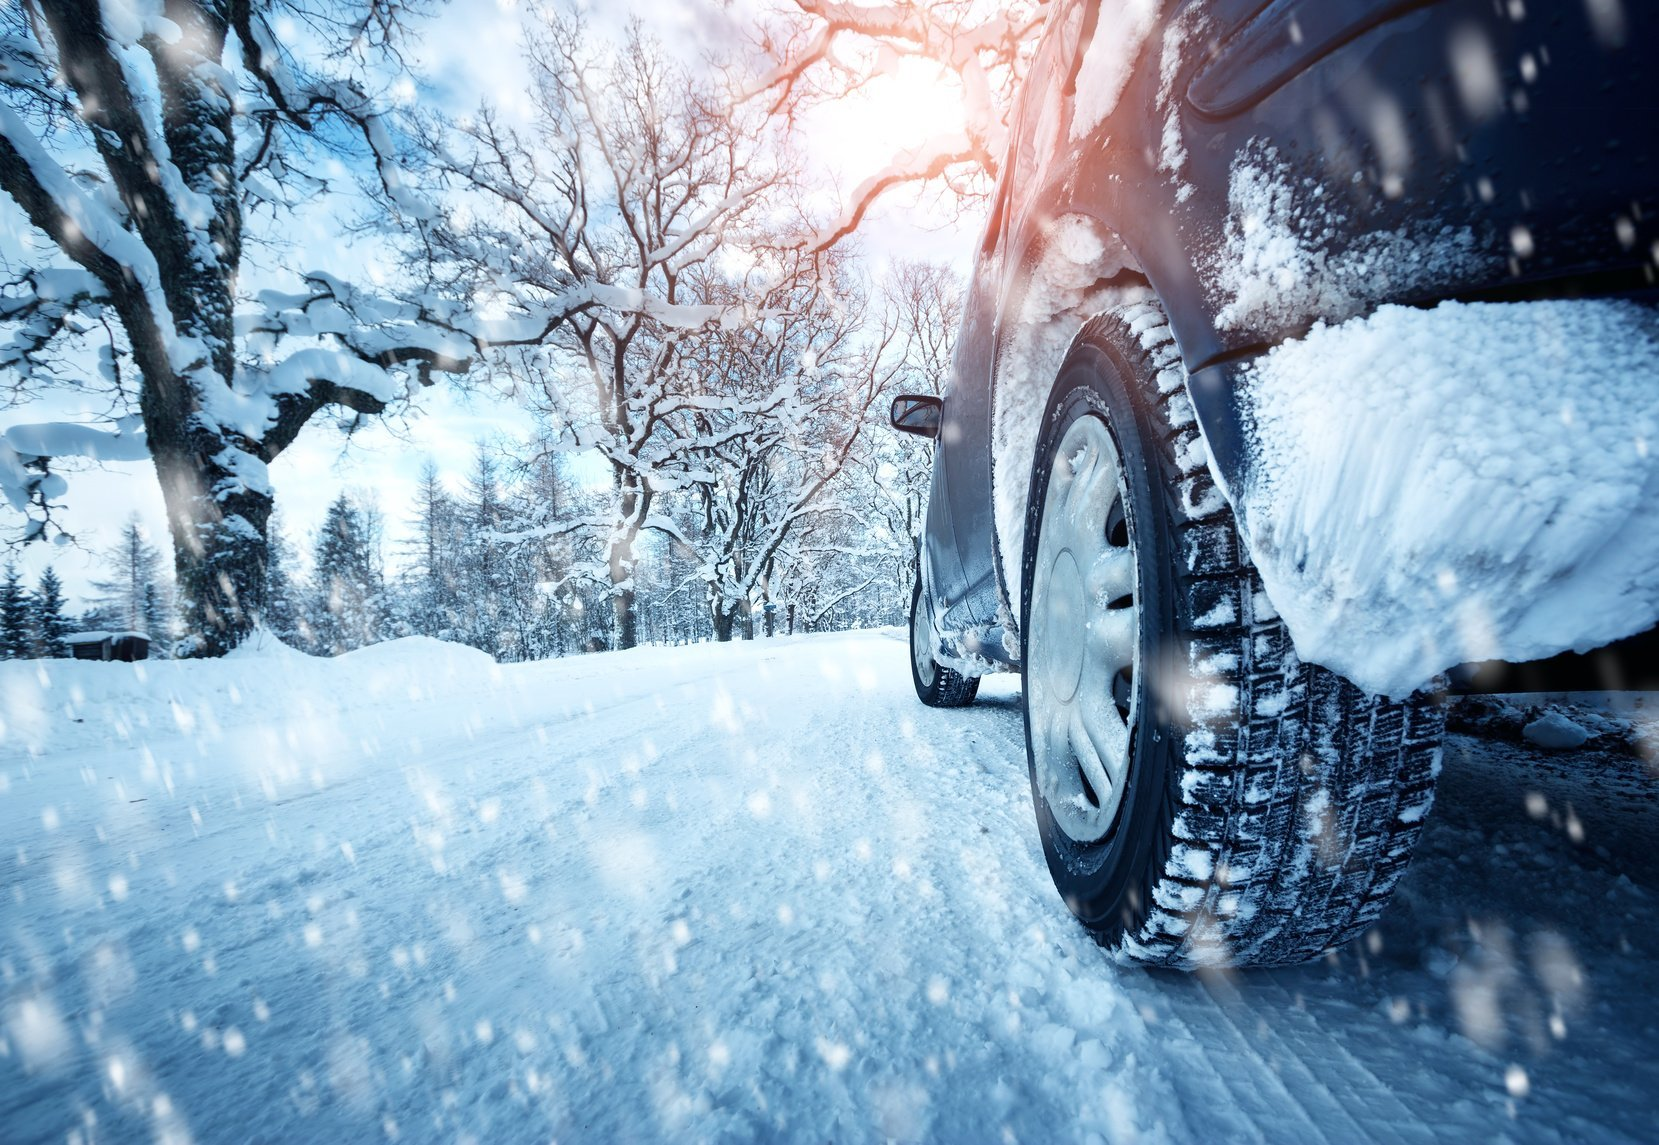 Winter car storage takes a bit of prep, more than you might think. Should you set the parking brake? What about fluids? Here are 5 things you should know